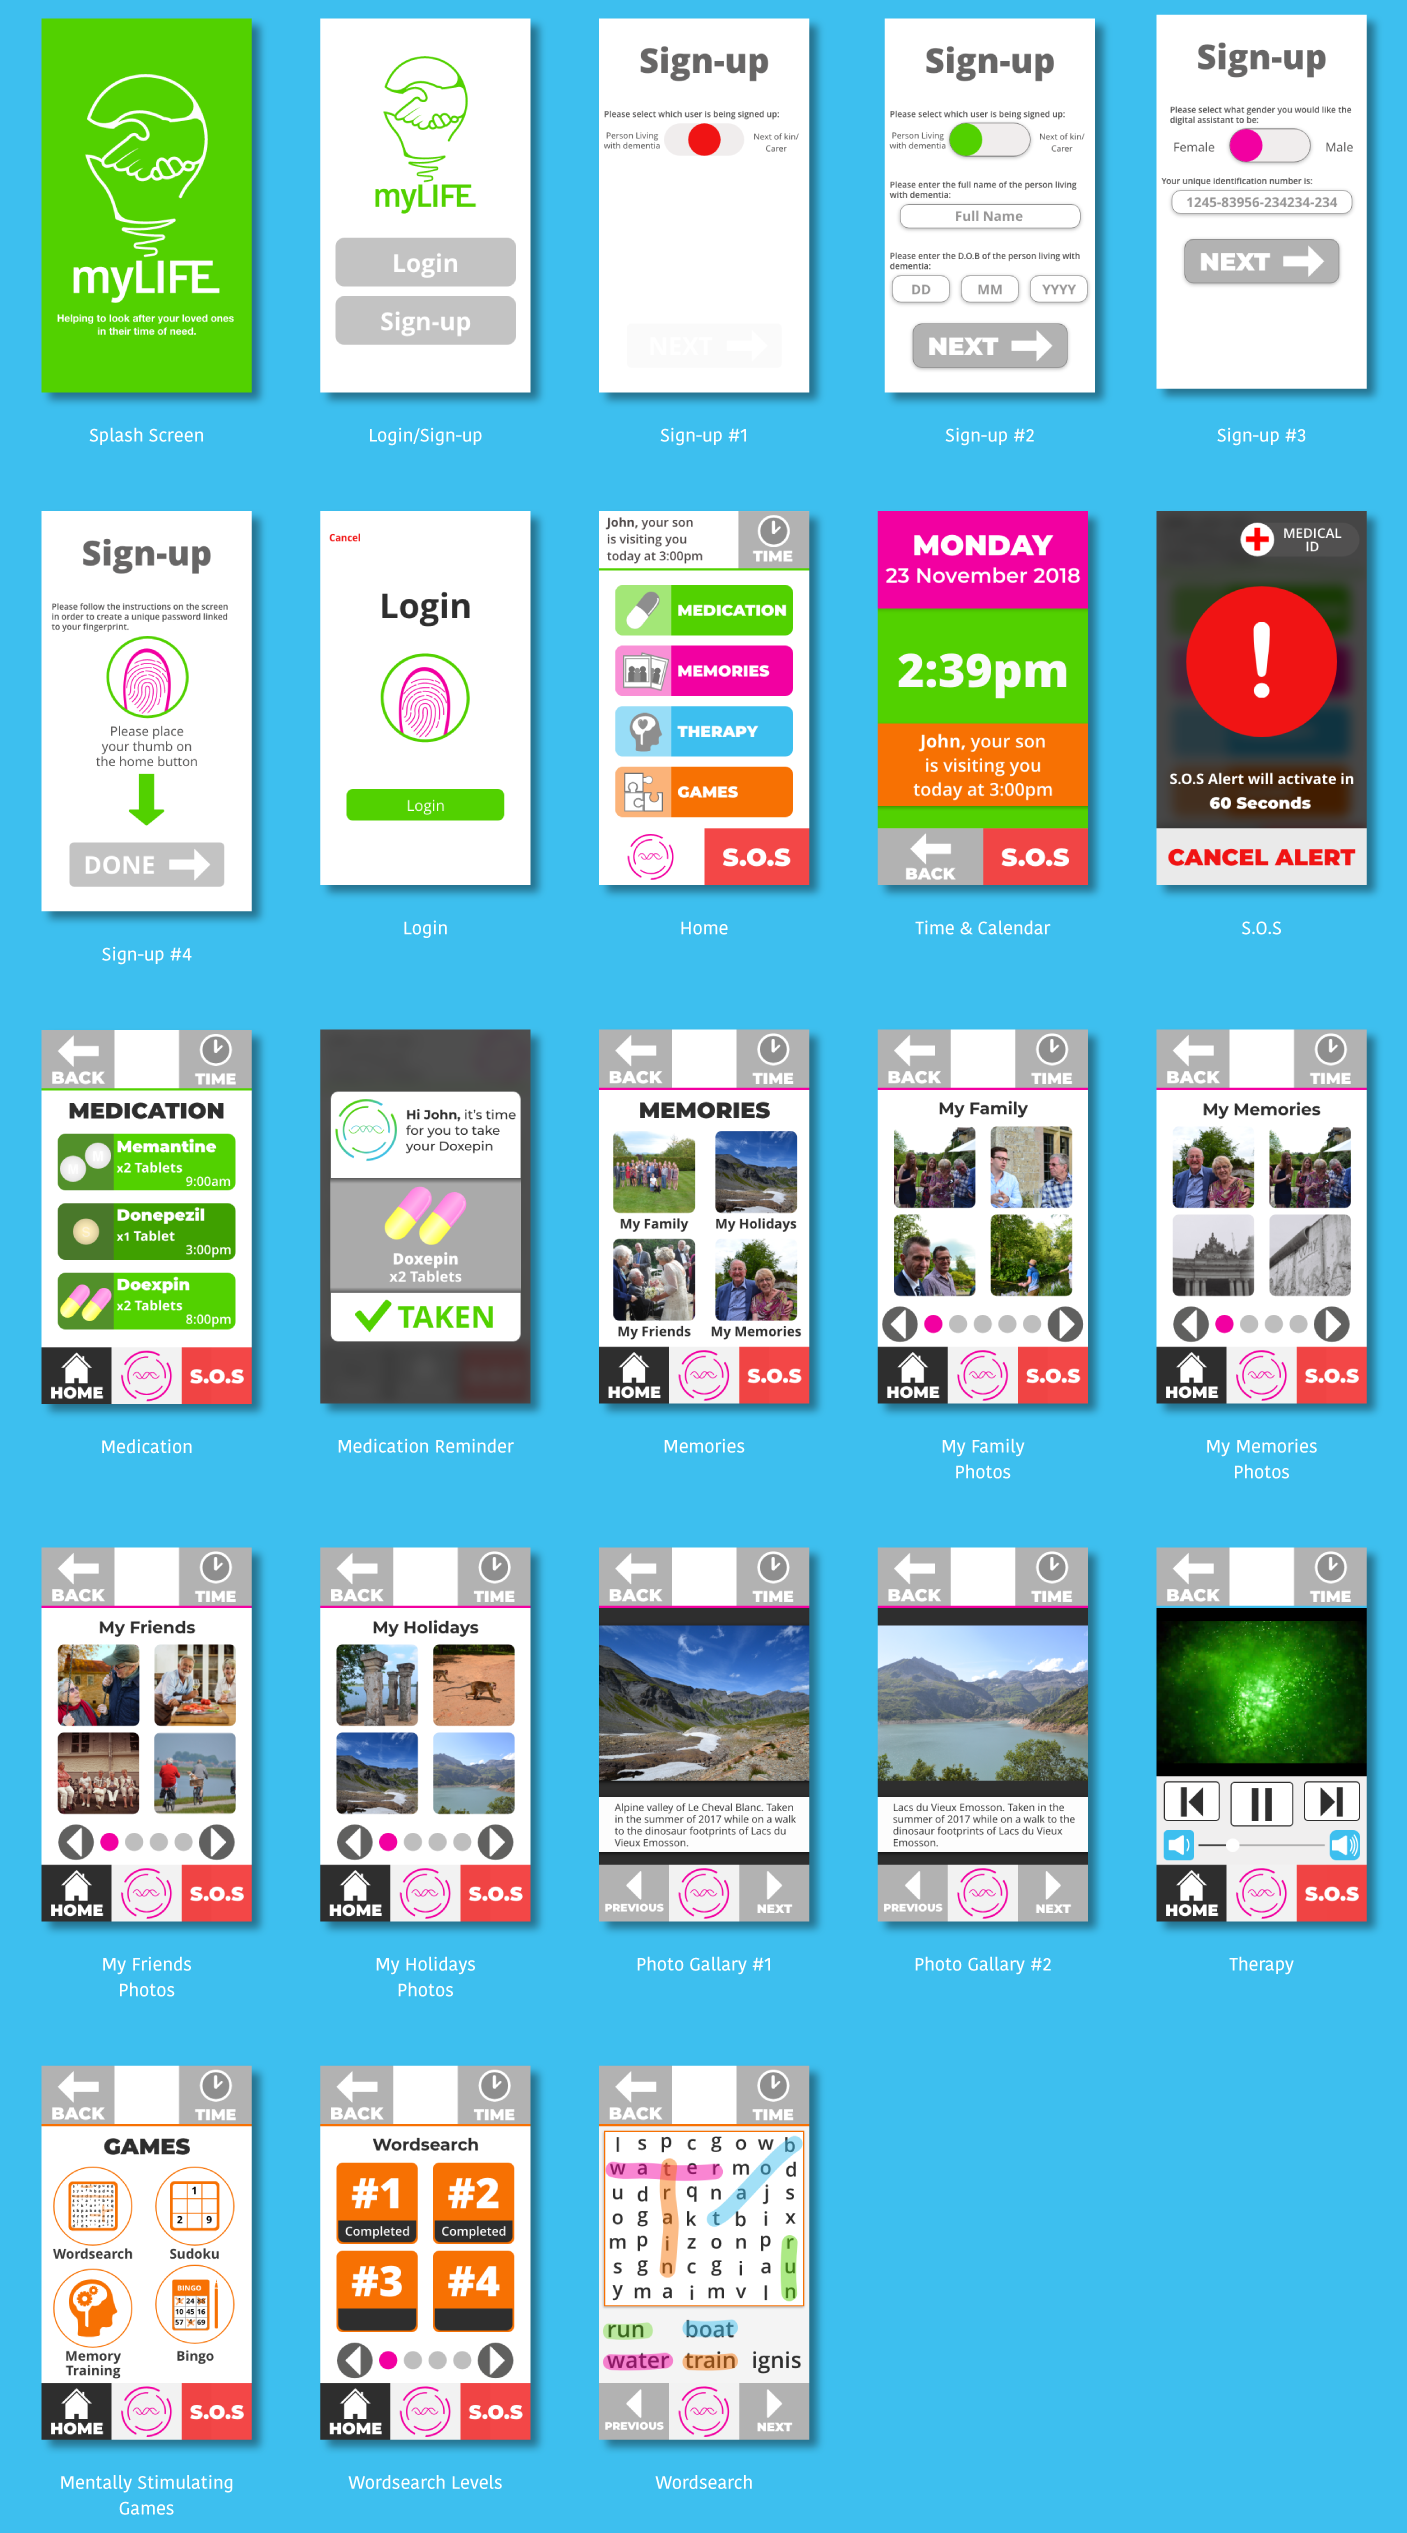 Person living with dementia    side of the mobile application.